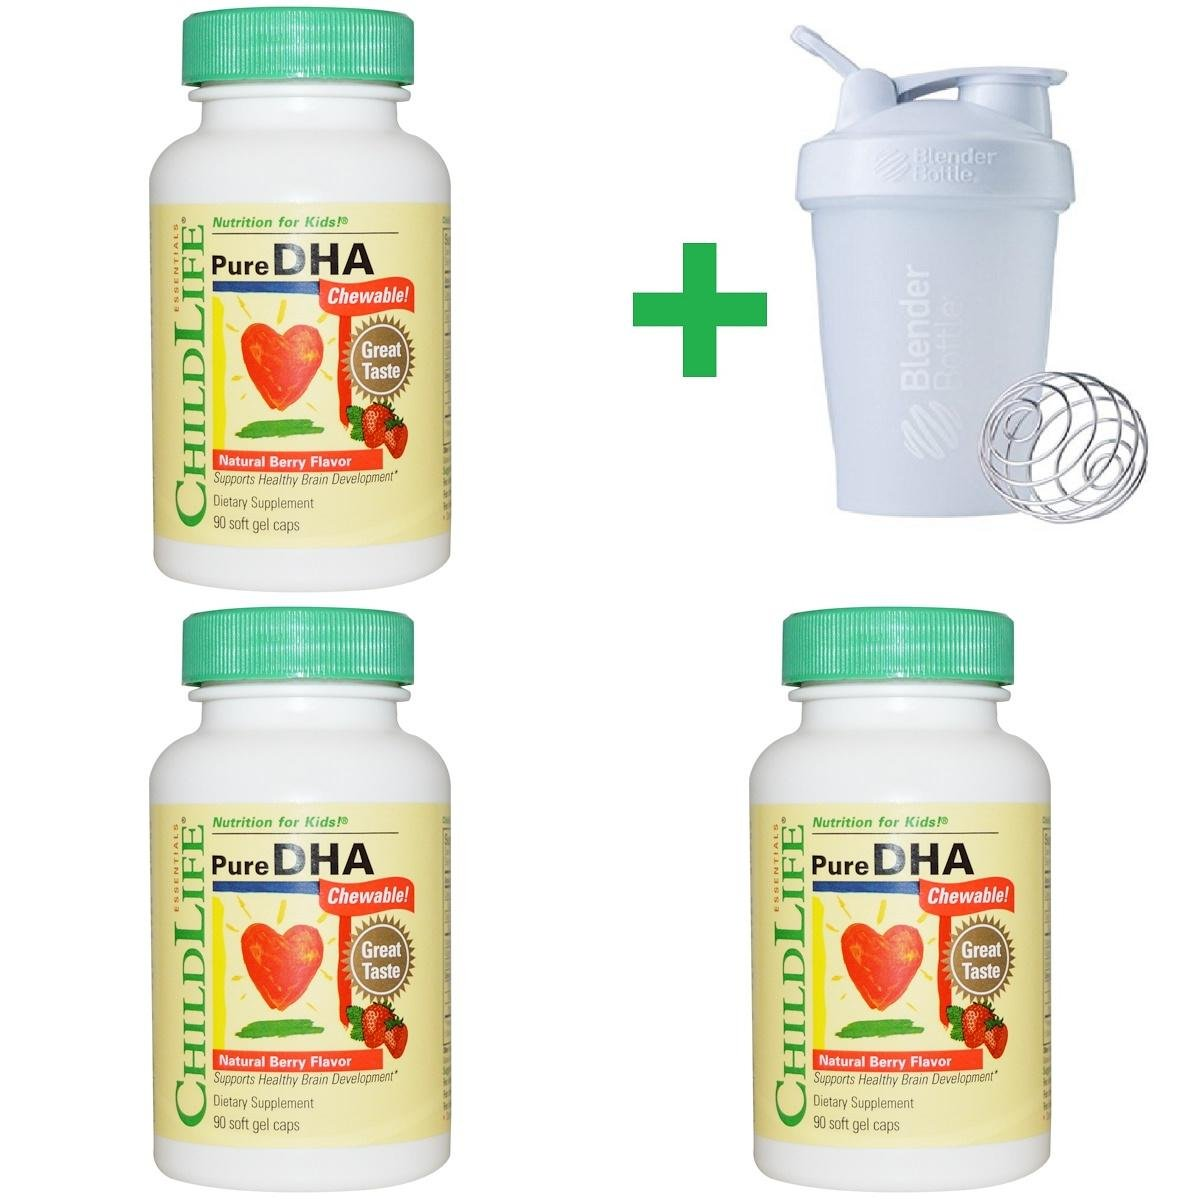 ChildLife, Pure DHA Chewable, Natural Berry Flavor, 90 Soft Gel Caps (3 PCS) + Assorted Sundesa, BlenderBottle, Classic With Loop, 20 oz